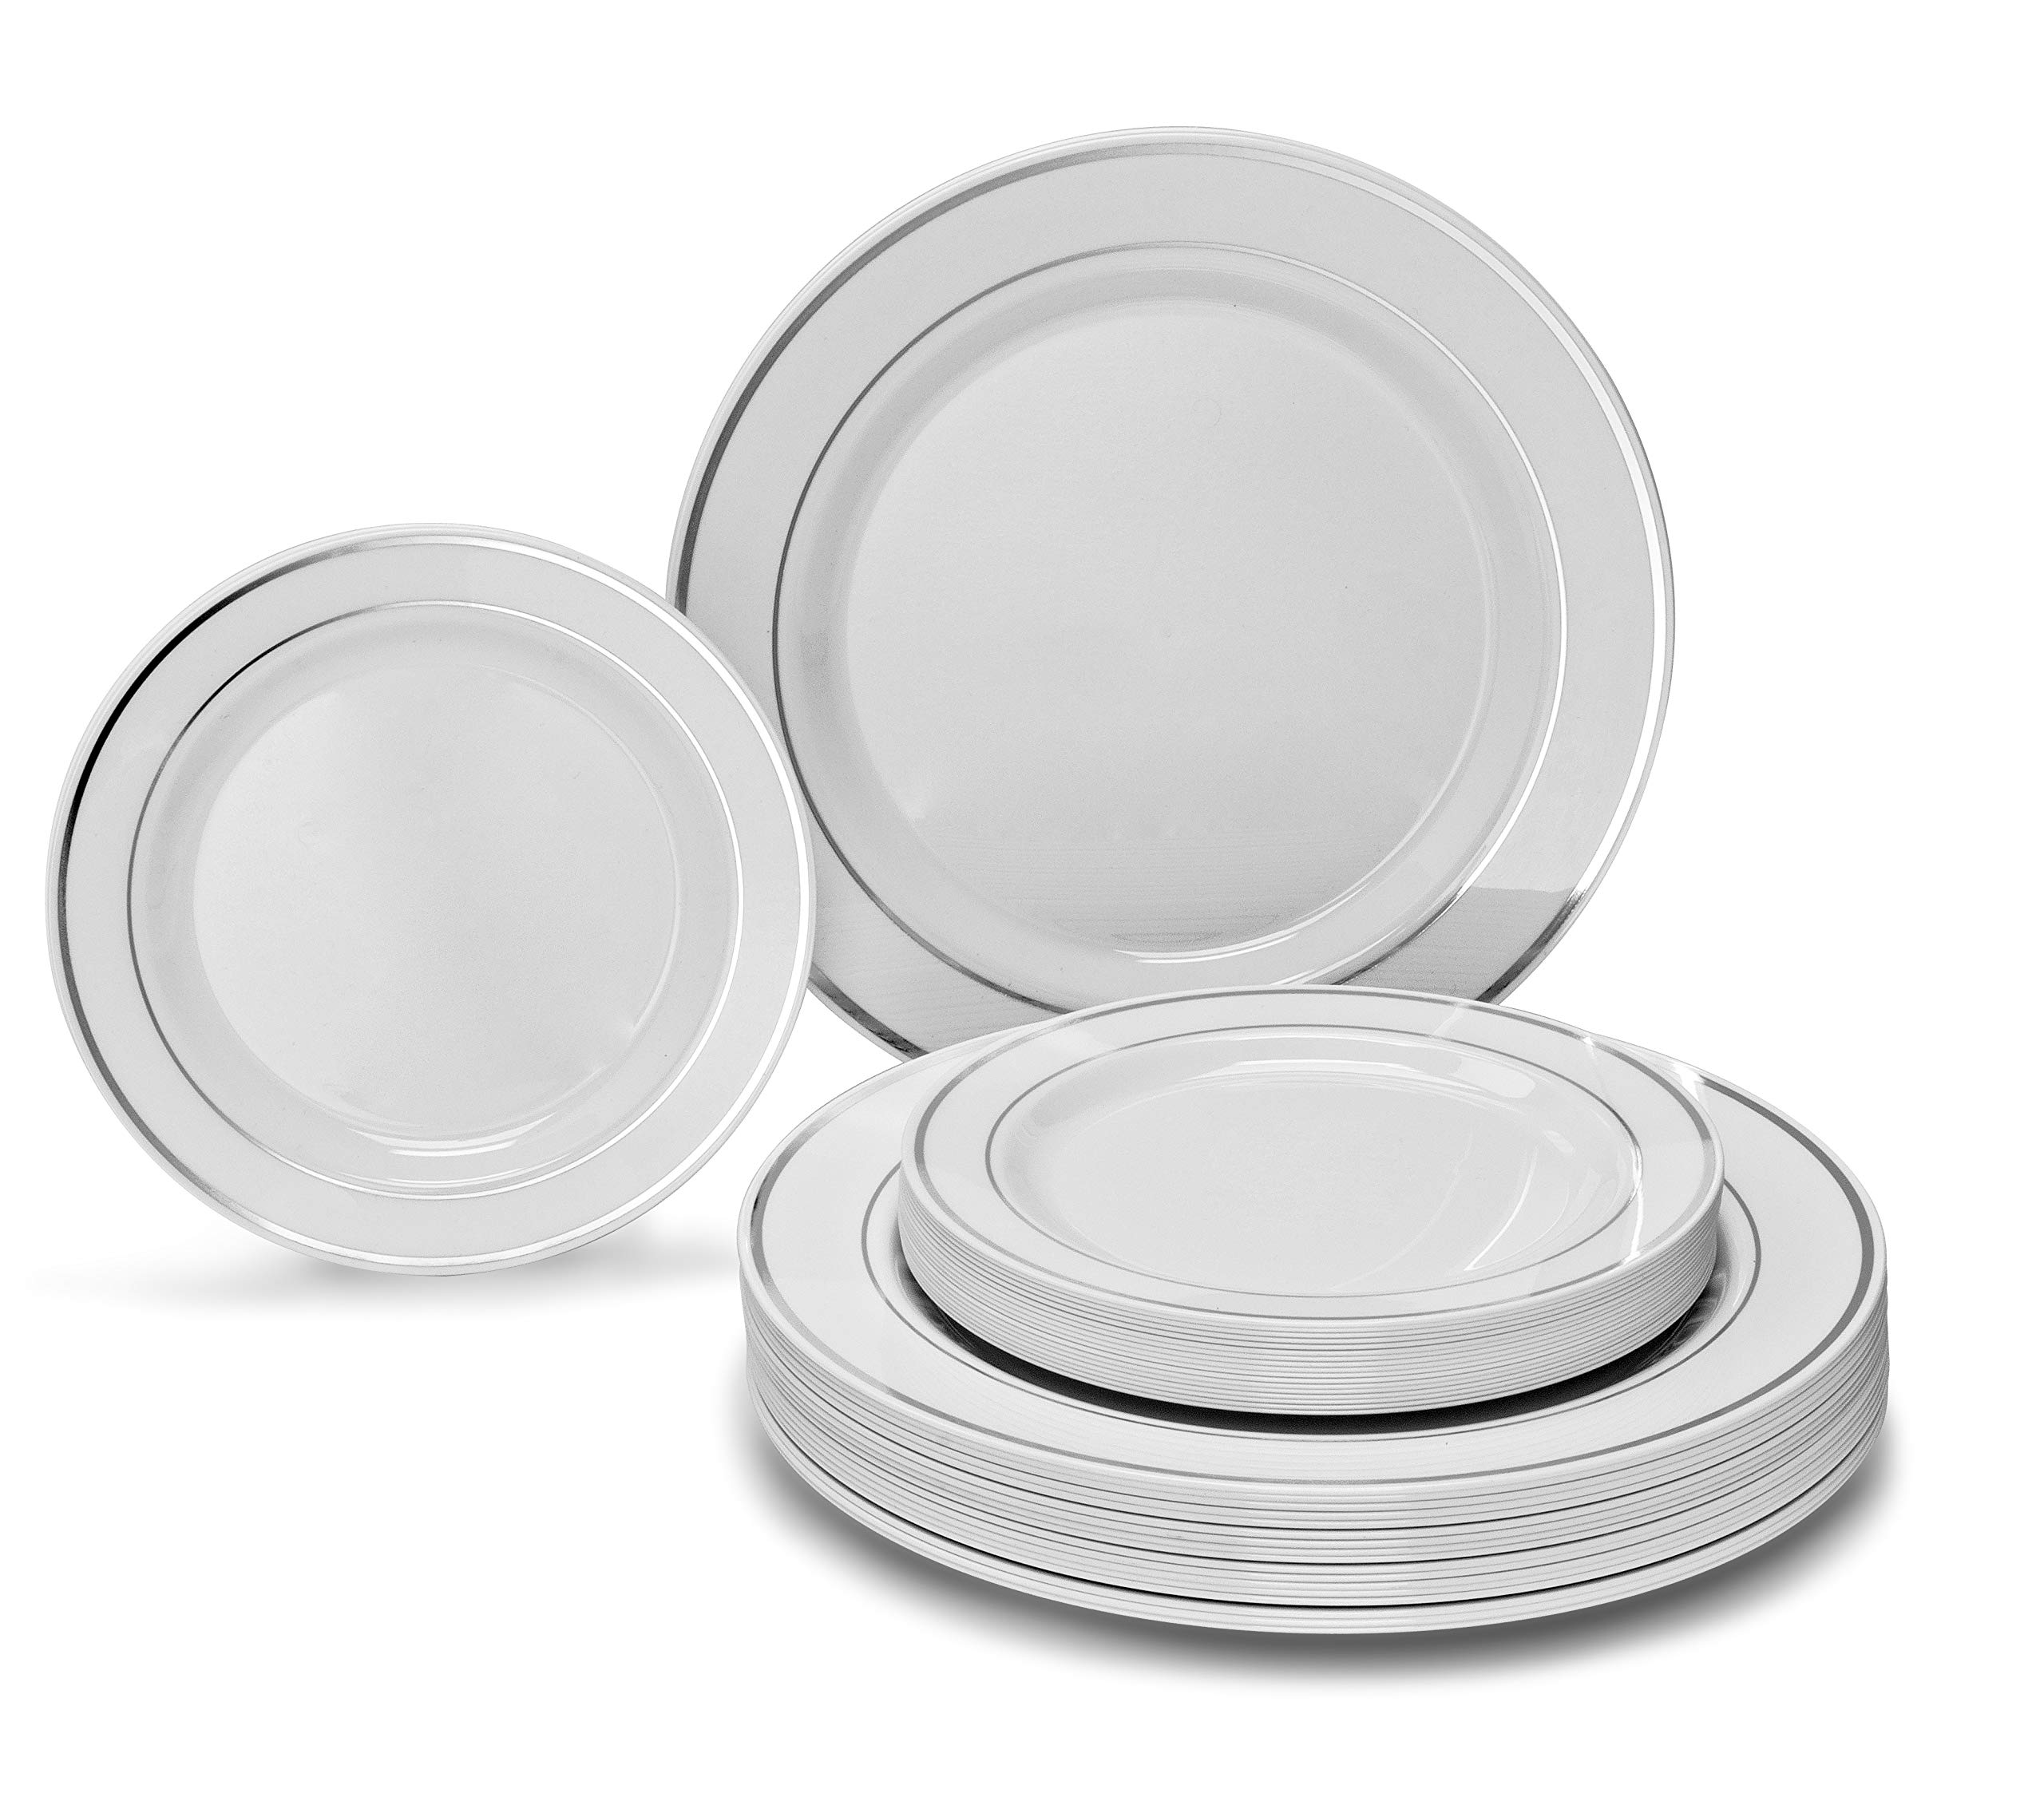 '' OCCASIONS'' 50 piece (25 guest) China Like Wedding Plastic Plates (25 x 10.5'' dinner + 25 x 7.5'' salad) Heavyweight Disposable Dinnerware Set - Heavy Duty Combo Party Plates (White/Silver Trim)